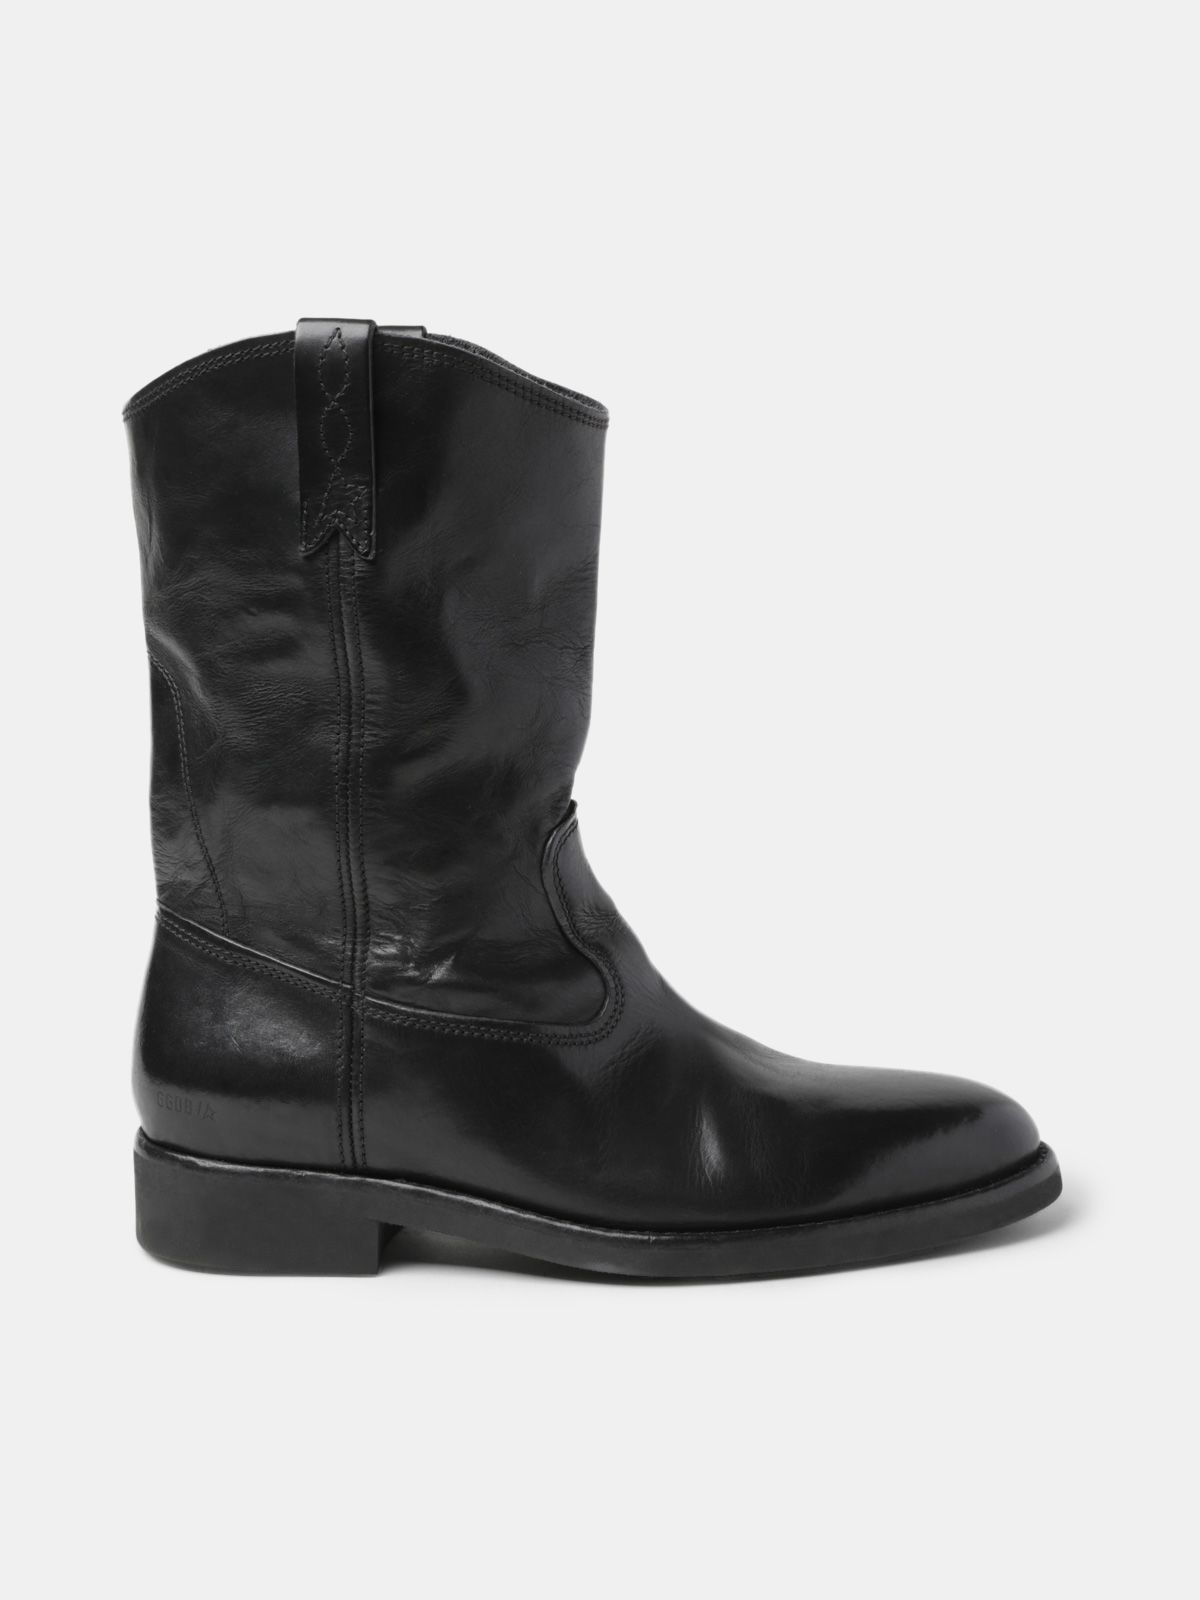 Golden Goose - Biker boots in glossy black leather in